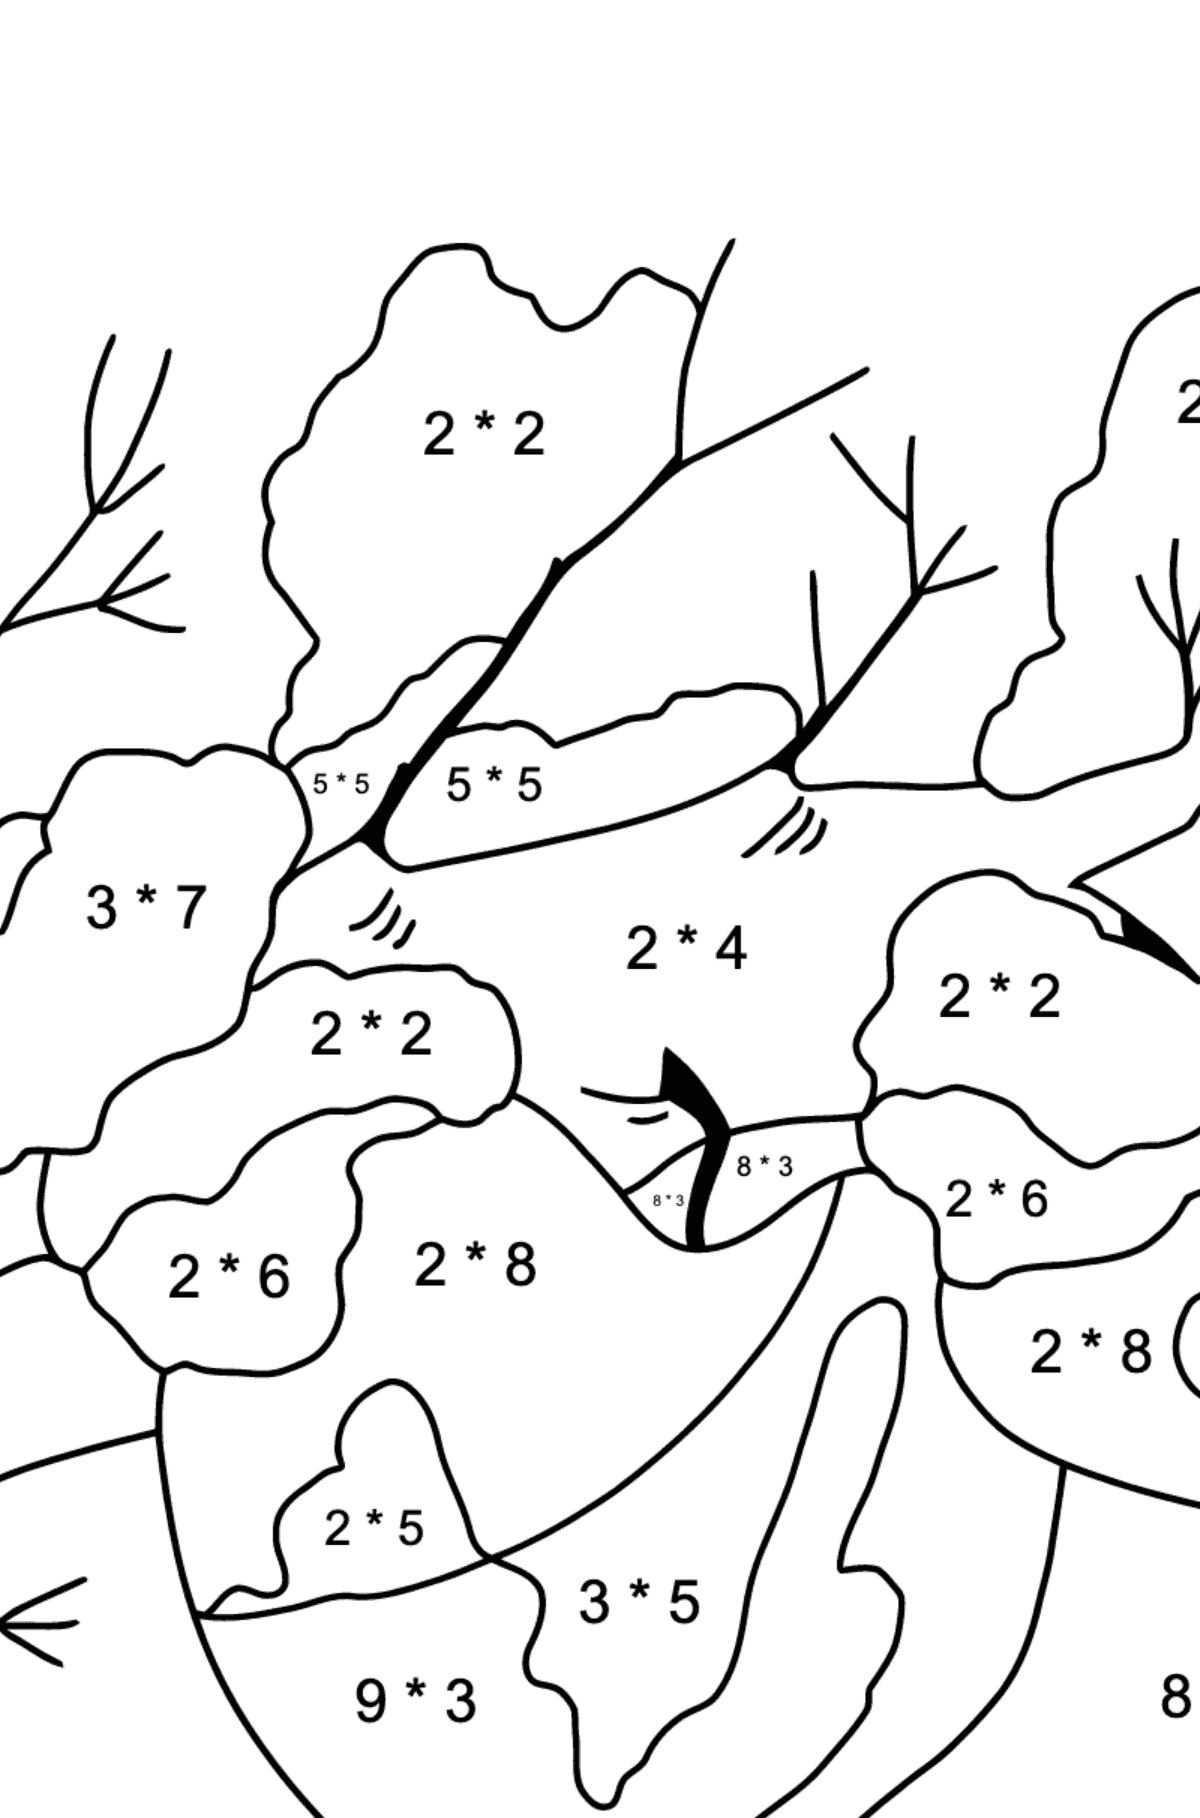 Winter Coloring Page - How Apples Hid in the Snow for Kids  - Color by Number Multiplication